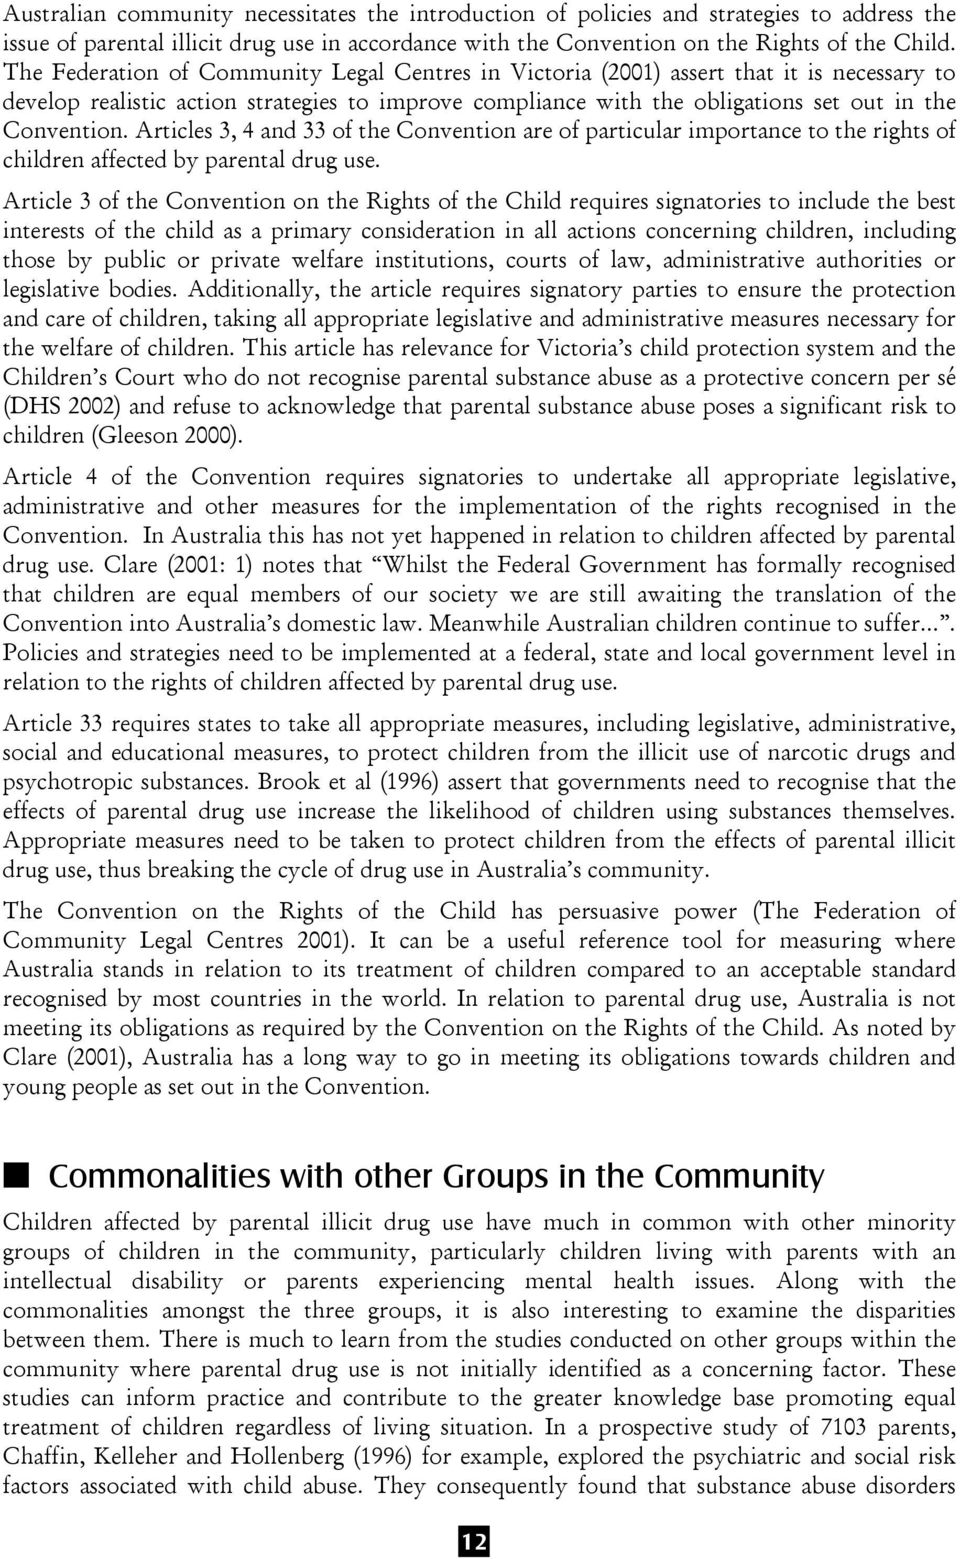 an introduction to the issue of the childhood psychological disorders associated with drug use It provides advice on taking instructions and questioning clients, and reviews the legal implications of gambling, parental drug use, mental health issues, family violence, child abuse, and parental alienation syndrome.